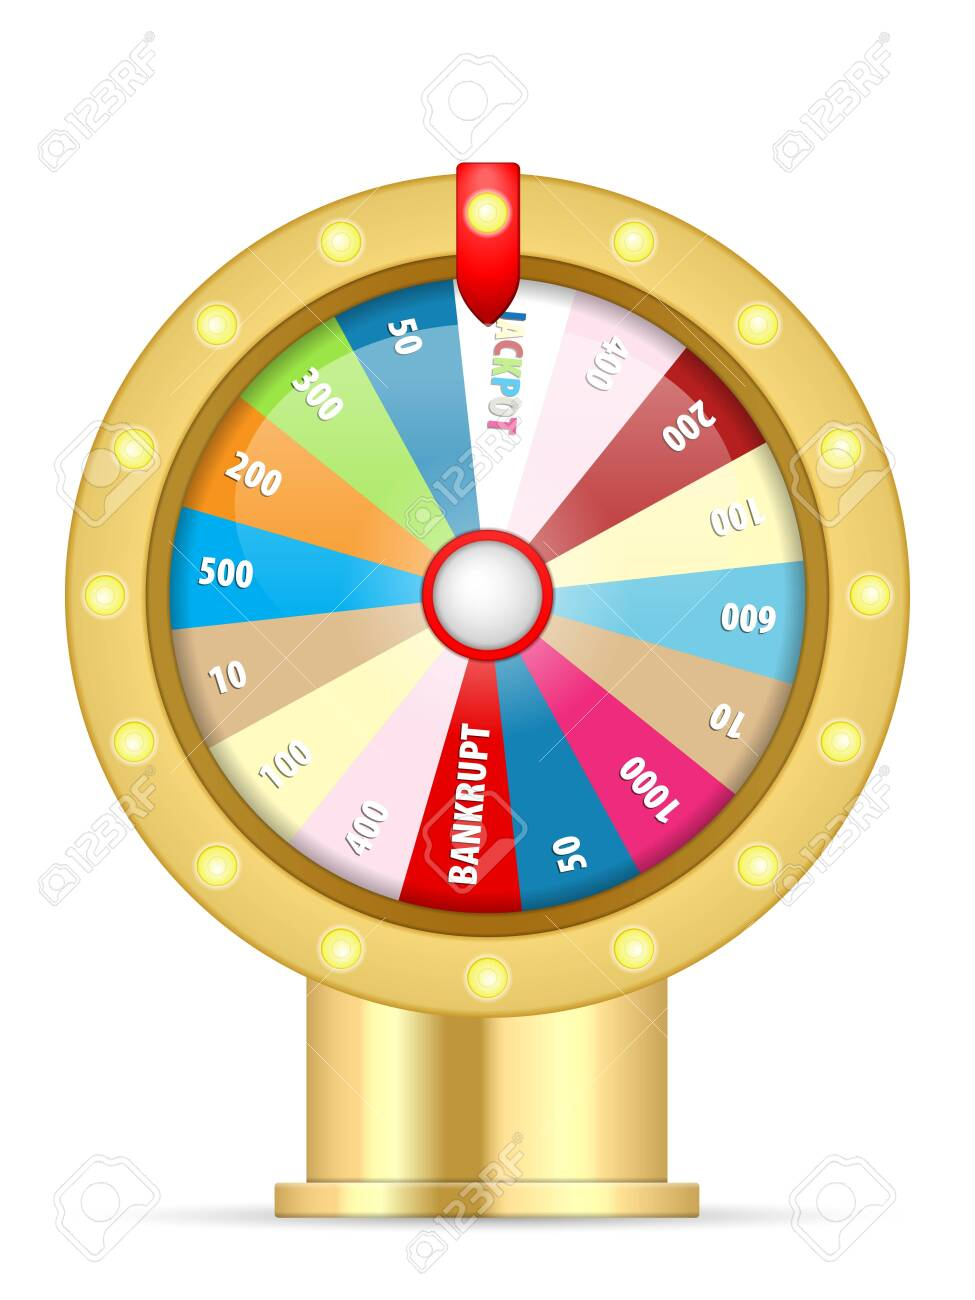 Wheel of fortune on a white background. Vector illustration. - 143227711